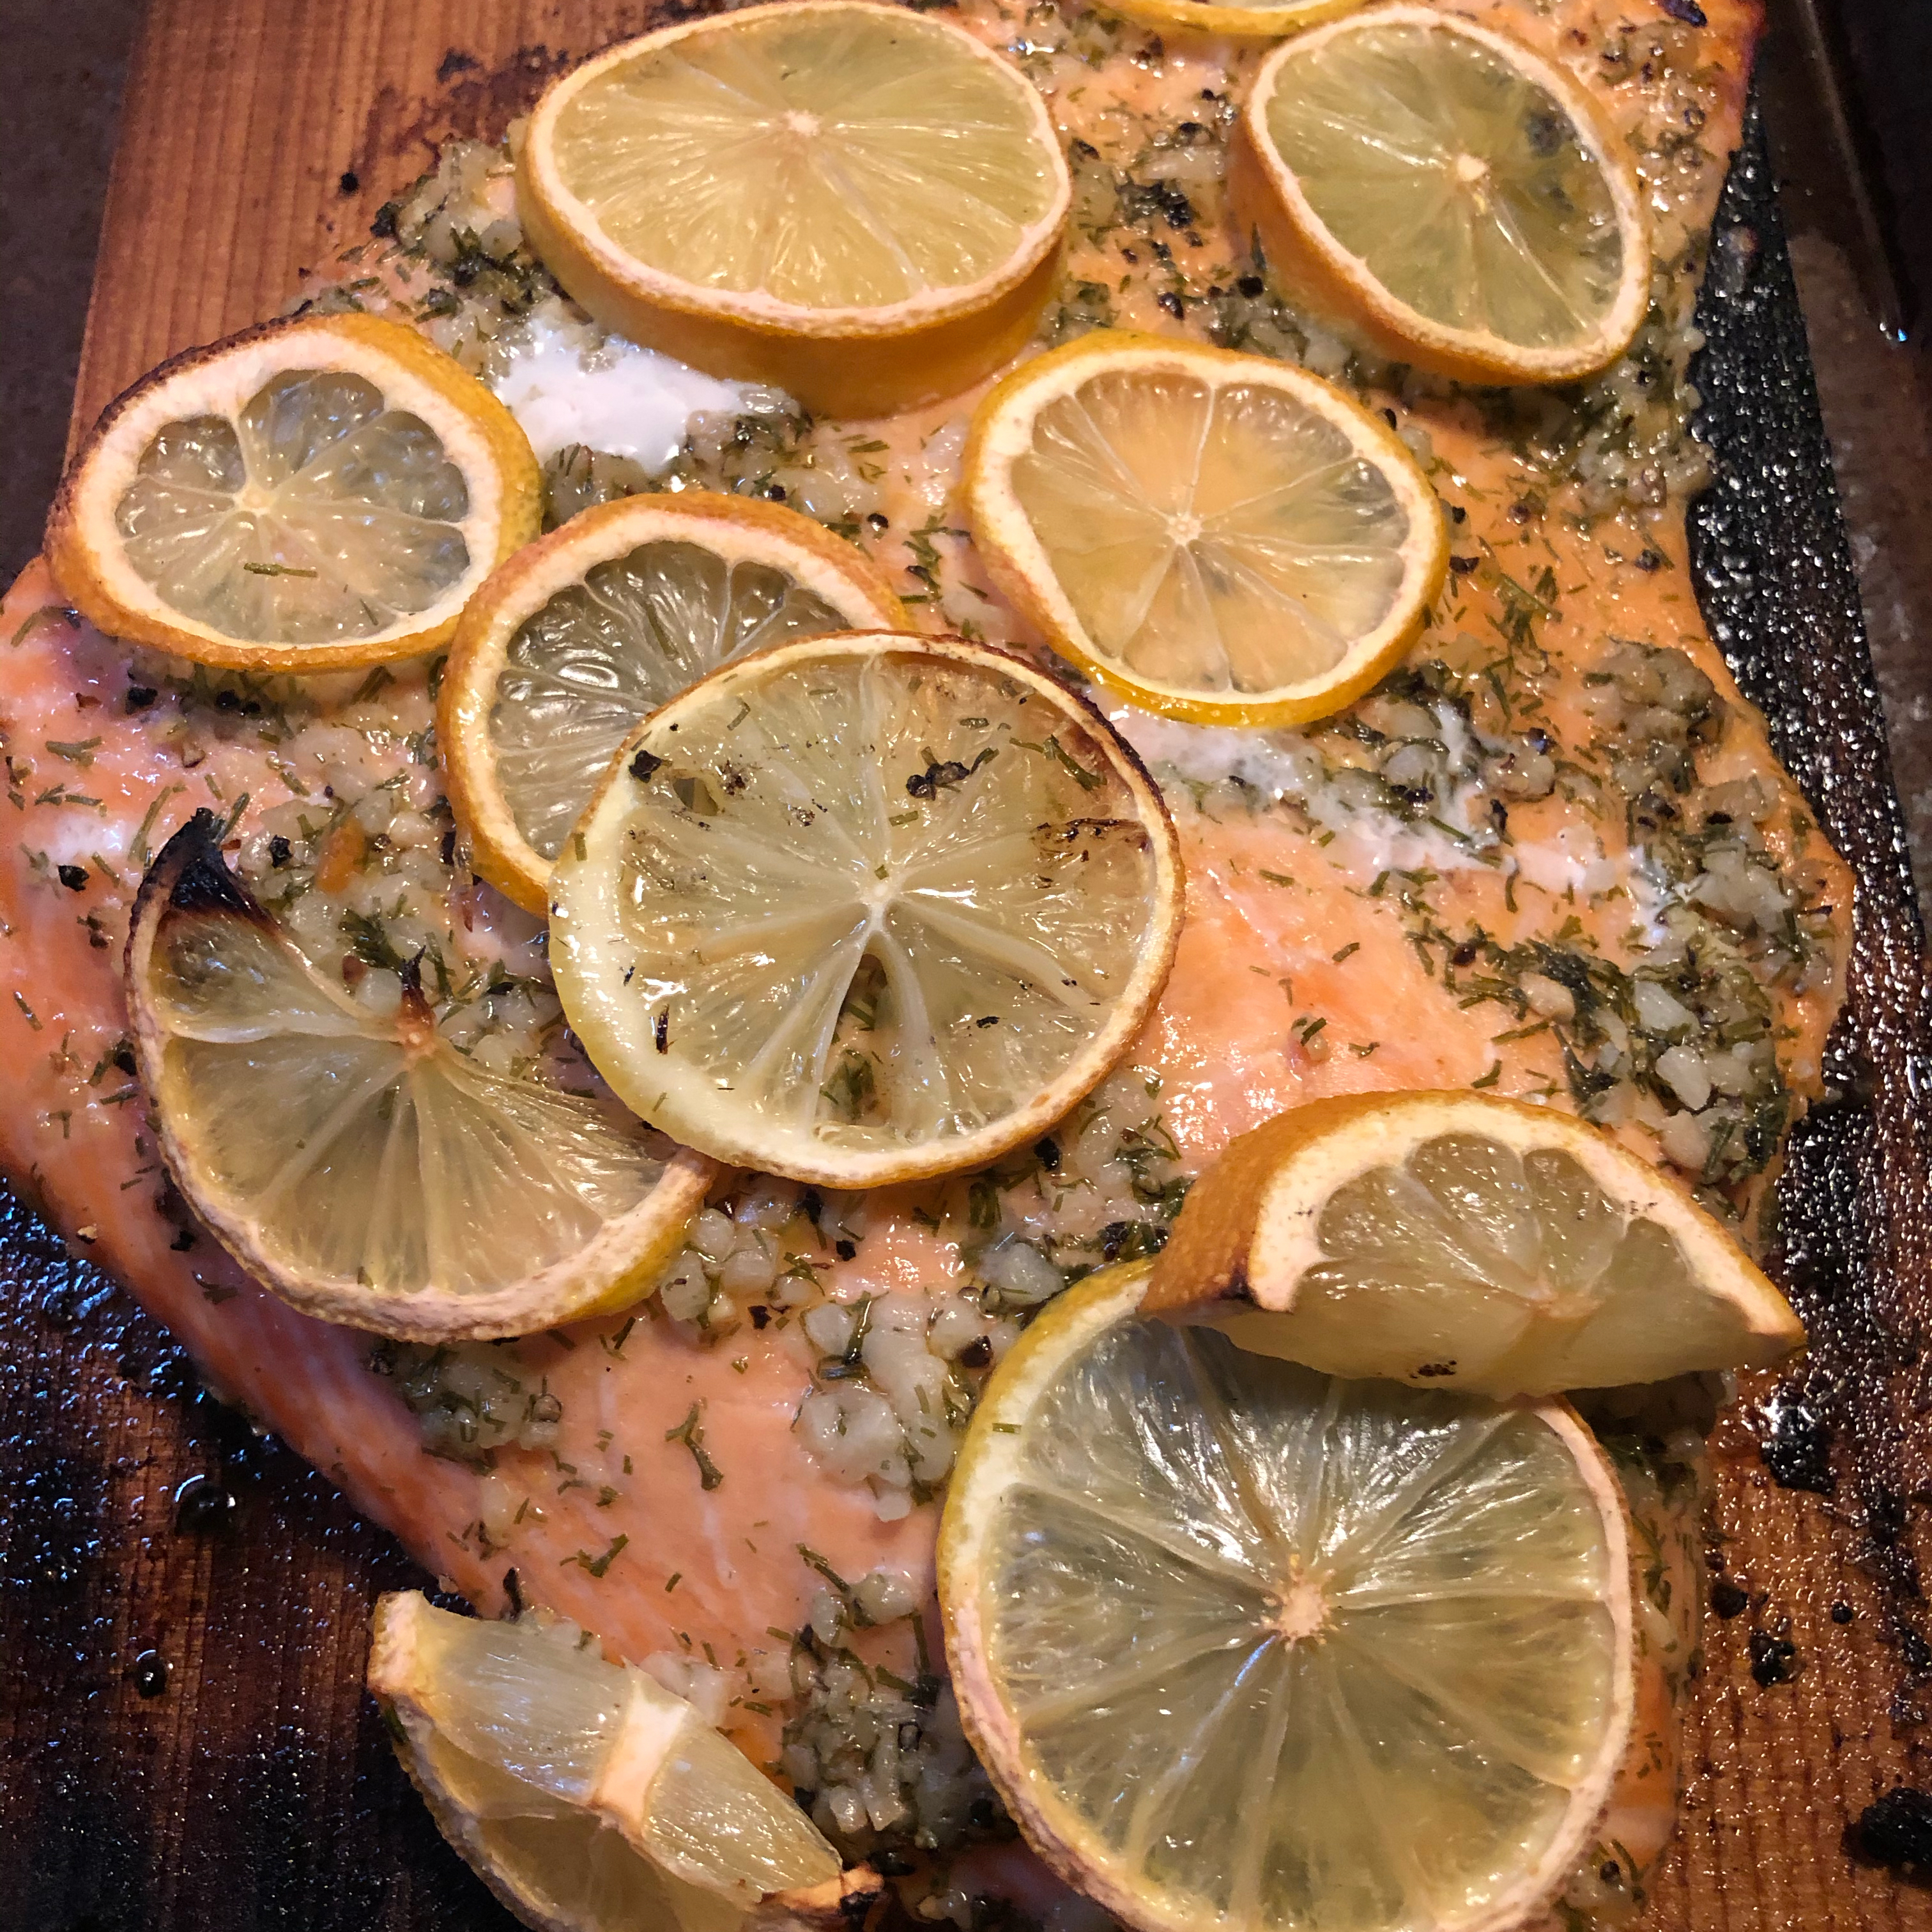 Cedar Plank-Grilled Salmon with Garlic, Lemon and Dill